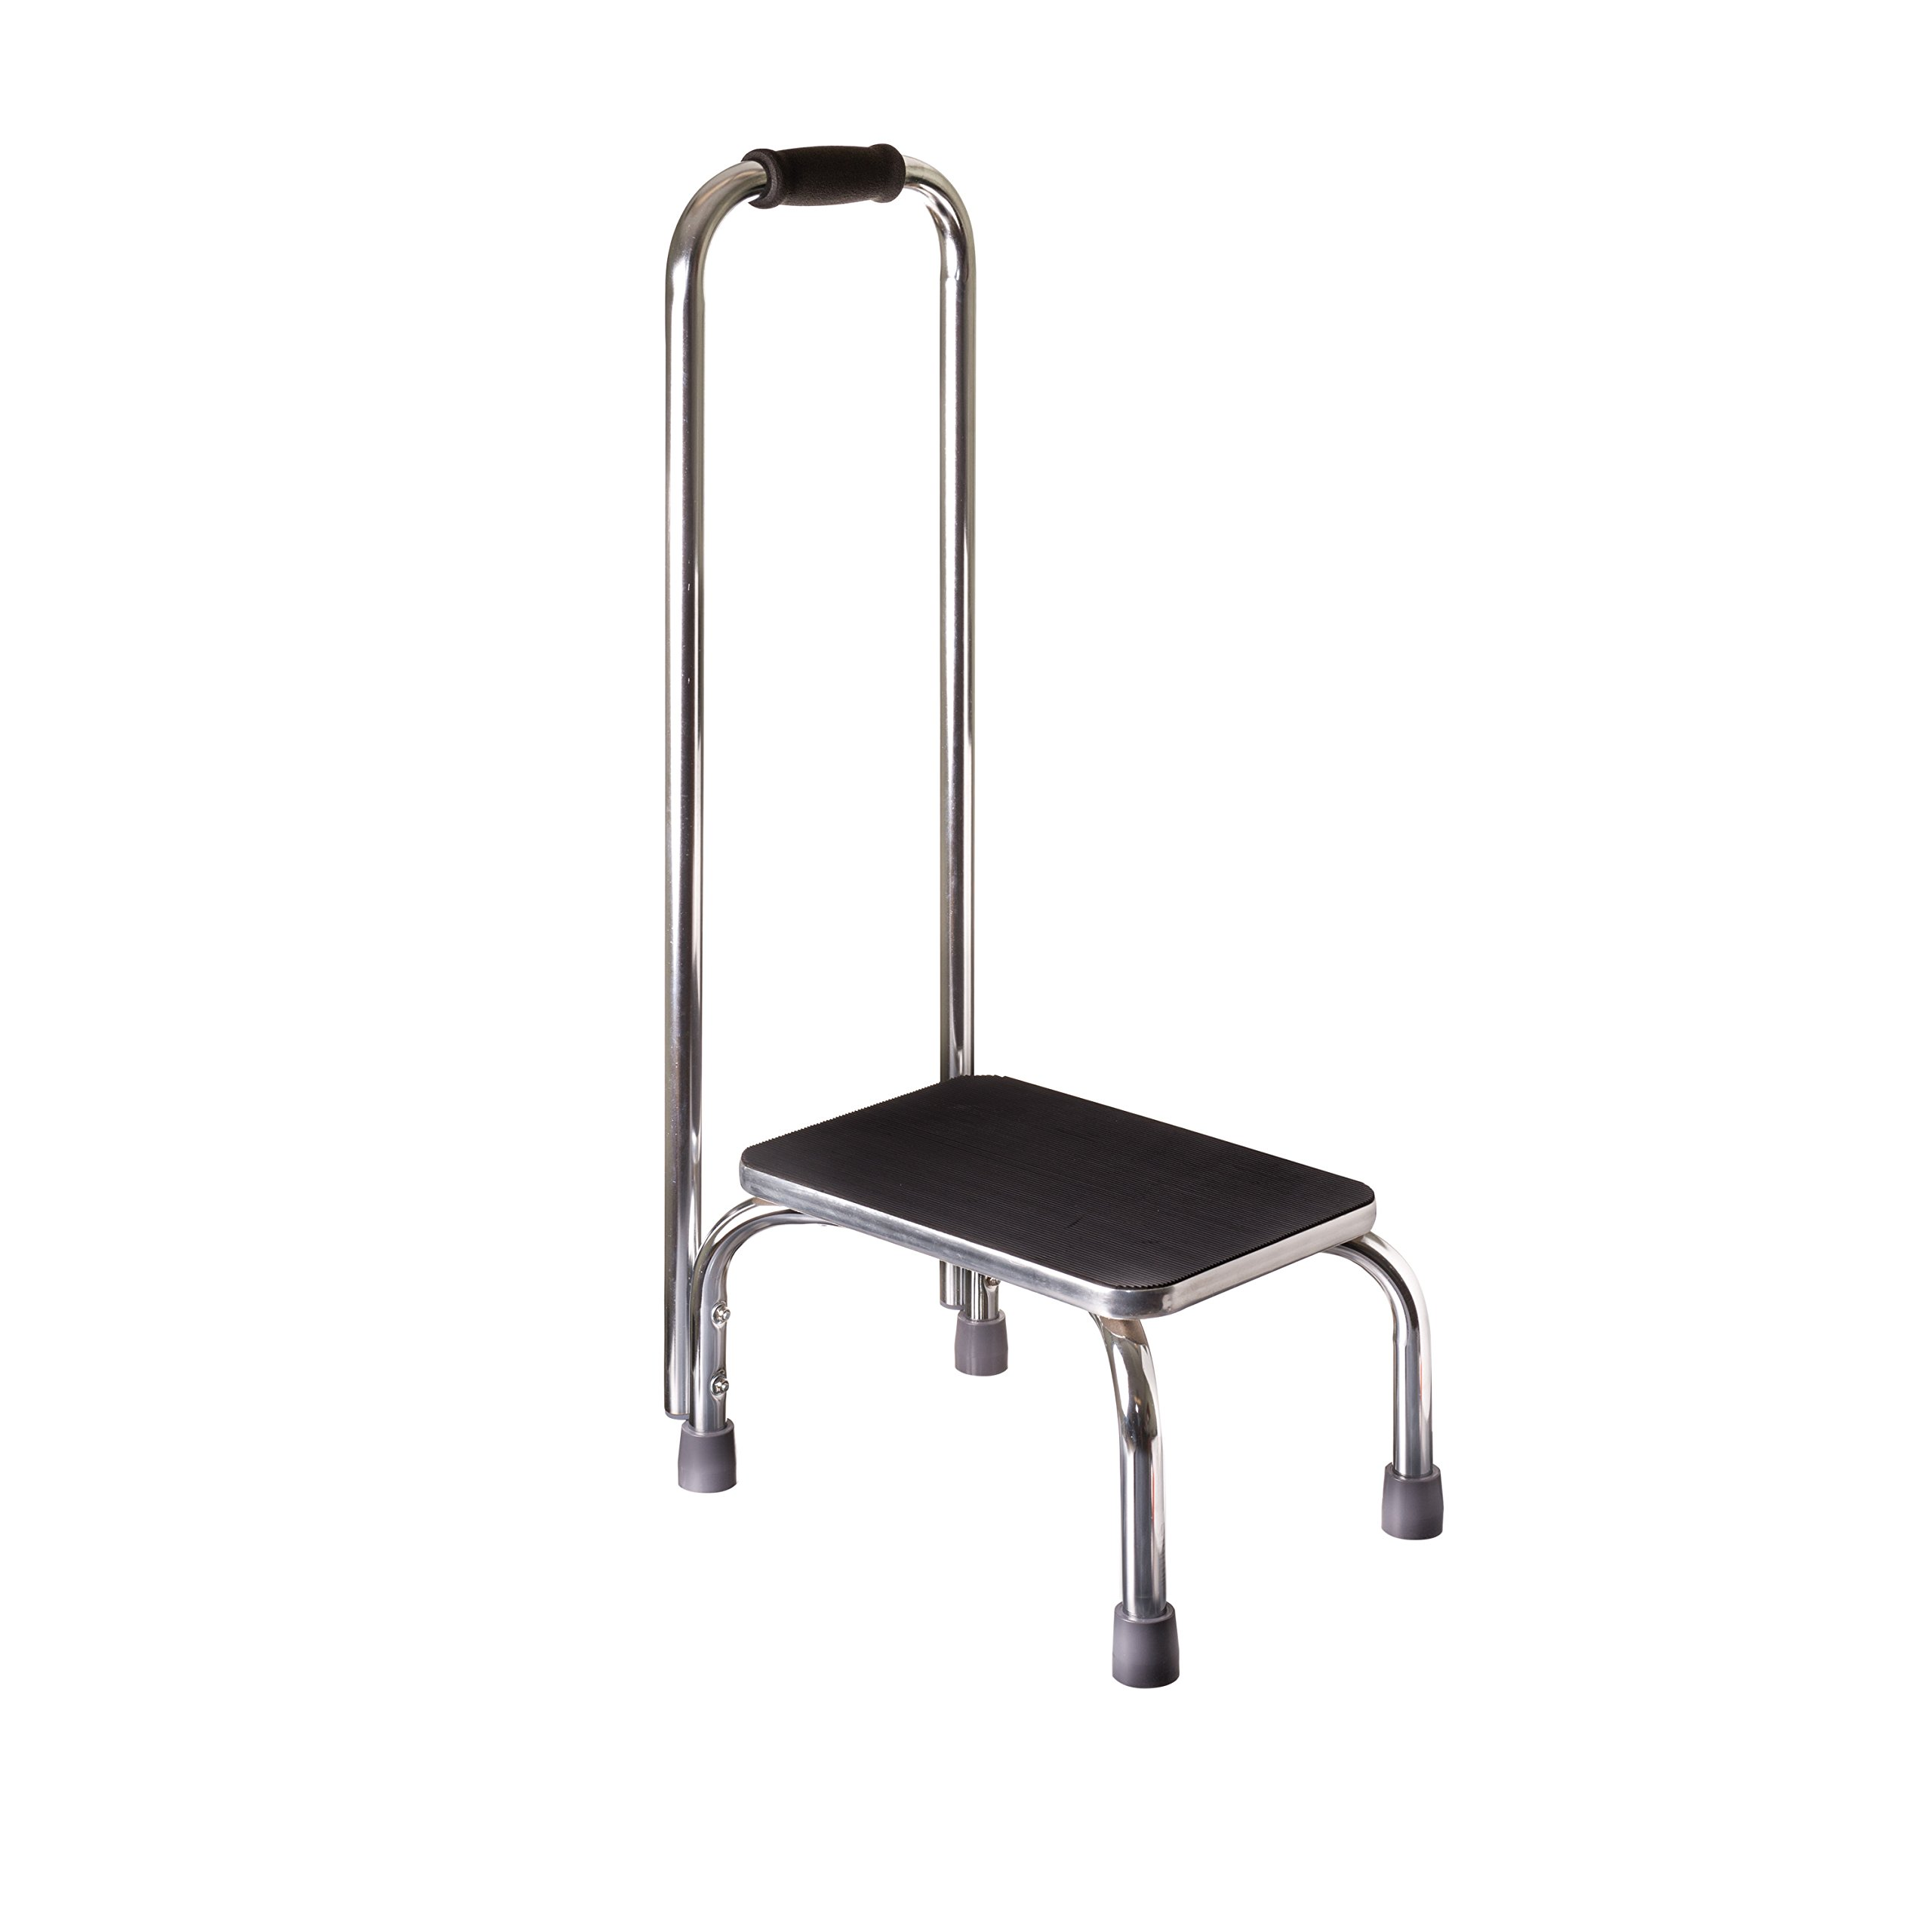 Duro-Med Step Stool with Handle, Silver and Black Medical Step Stool for High Beds, Seniors